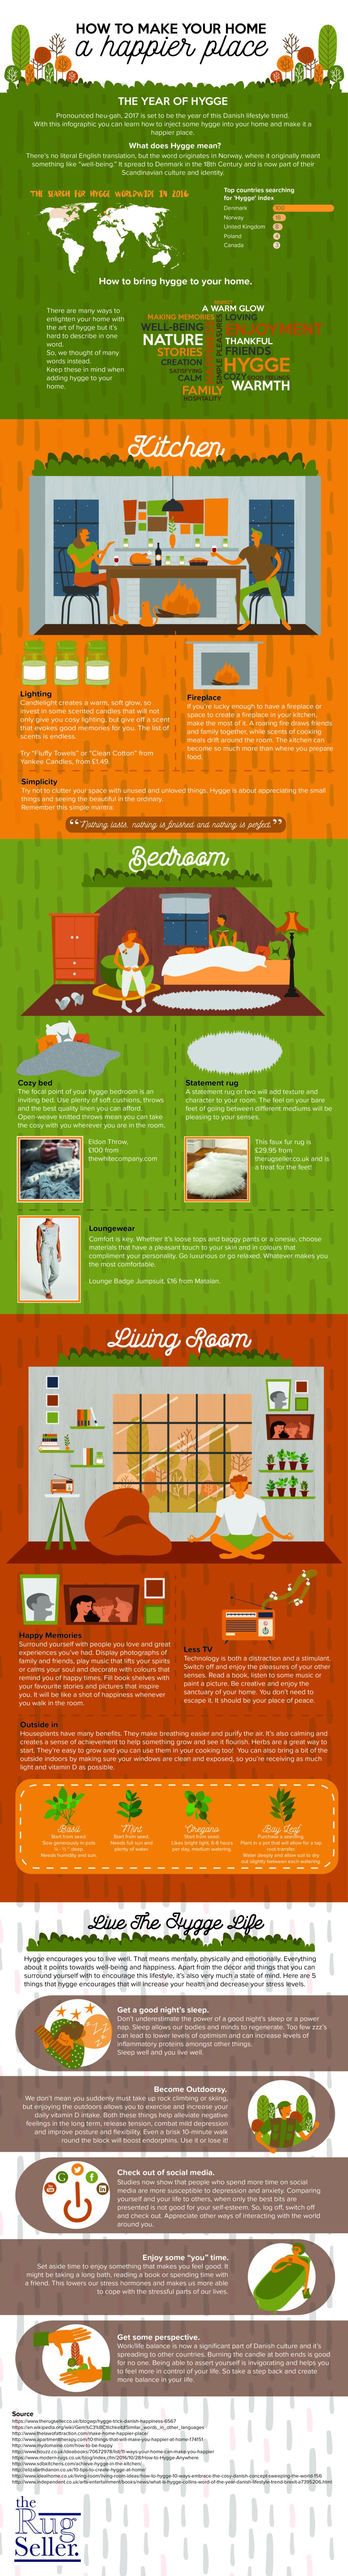 How To Add Hygge To Your Home - Infographic